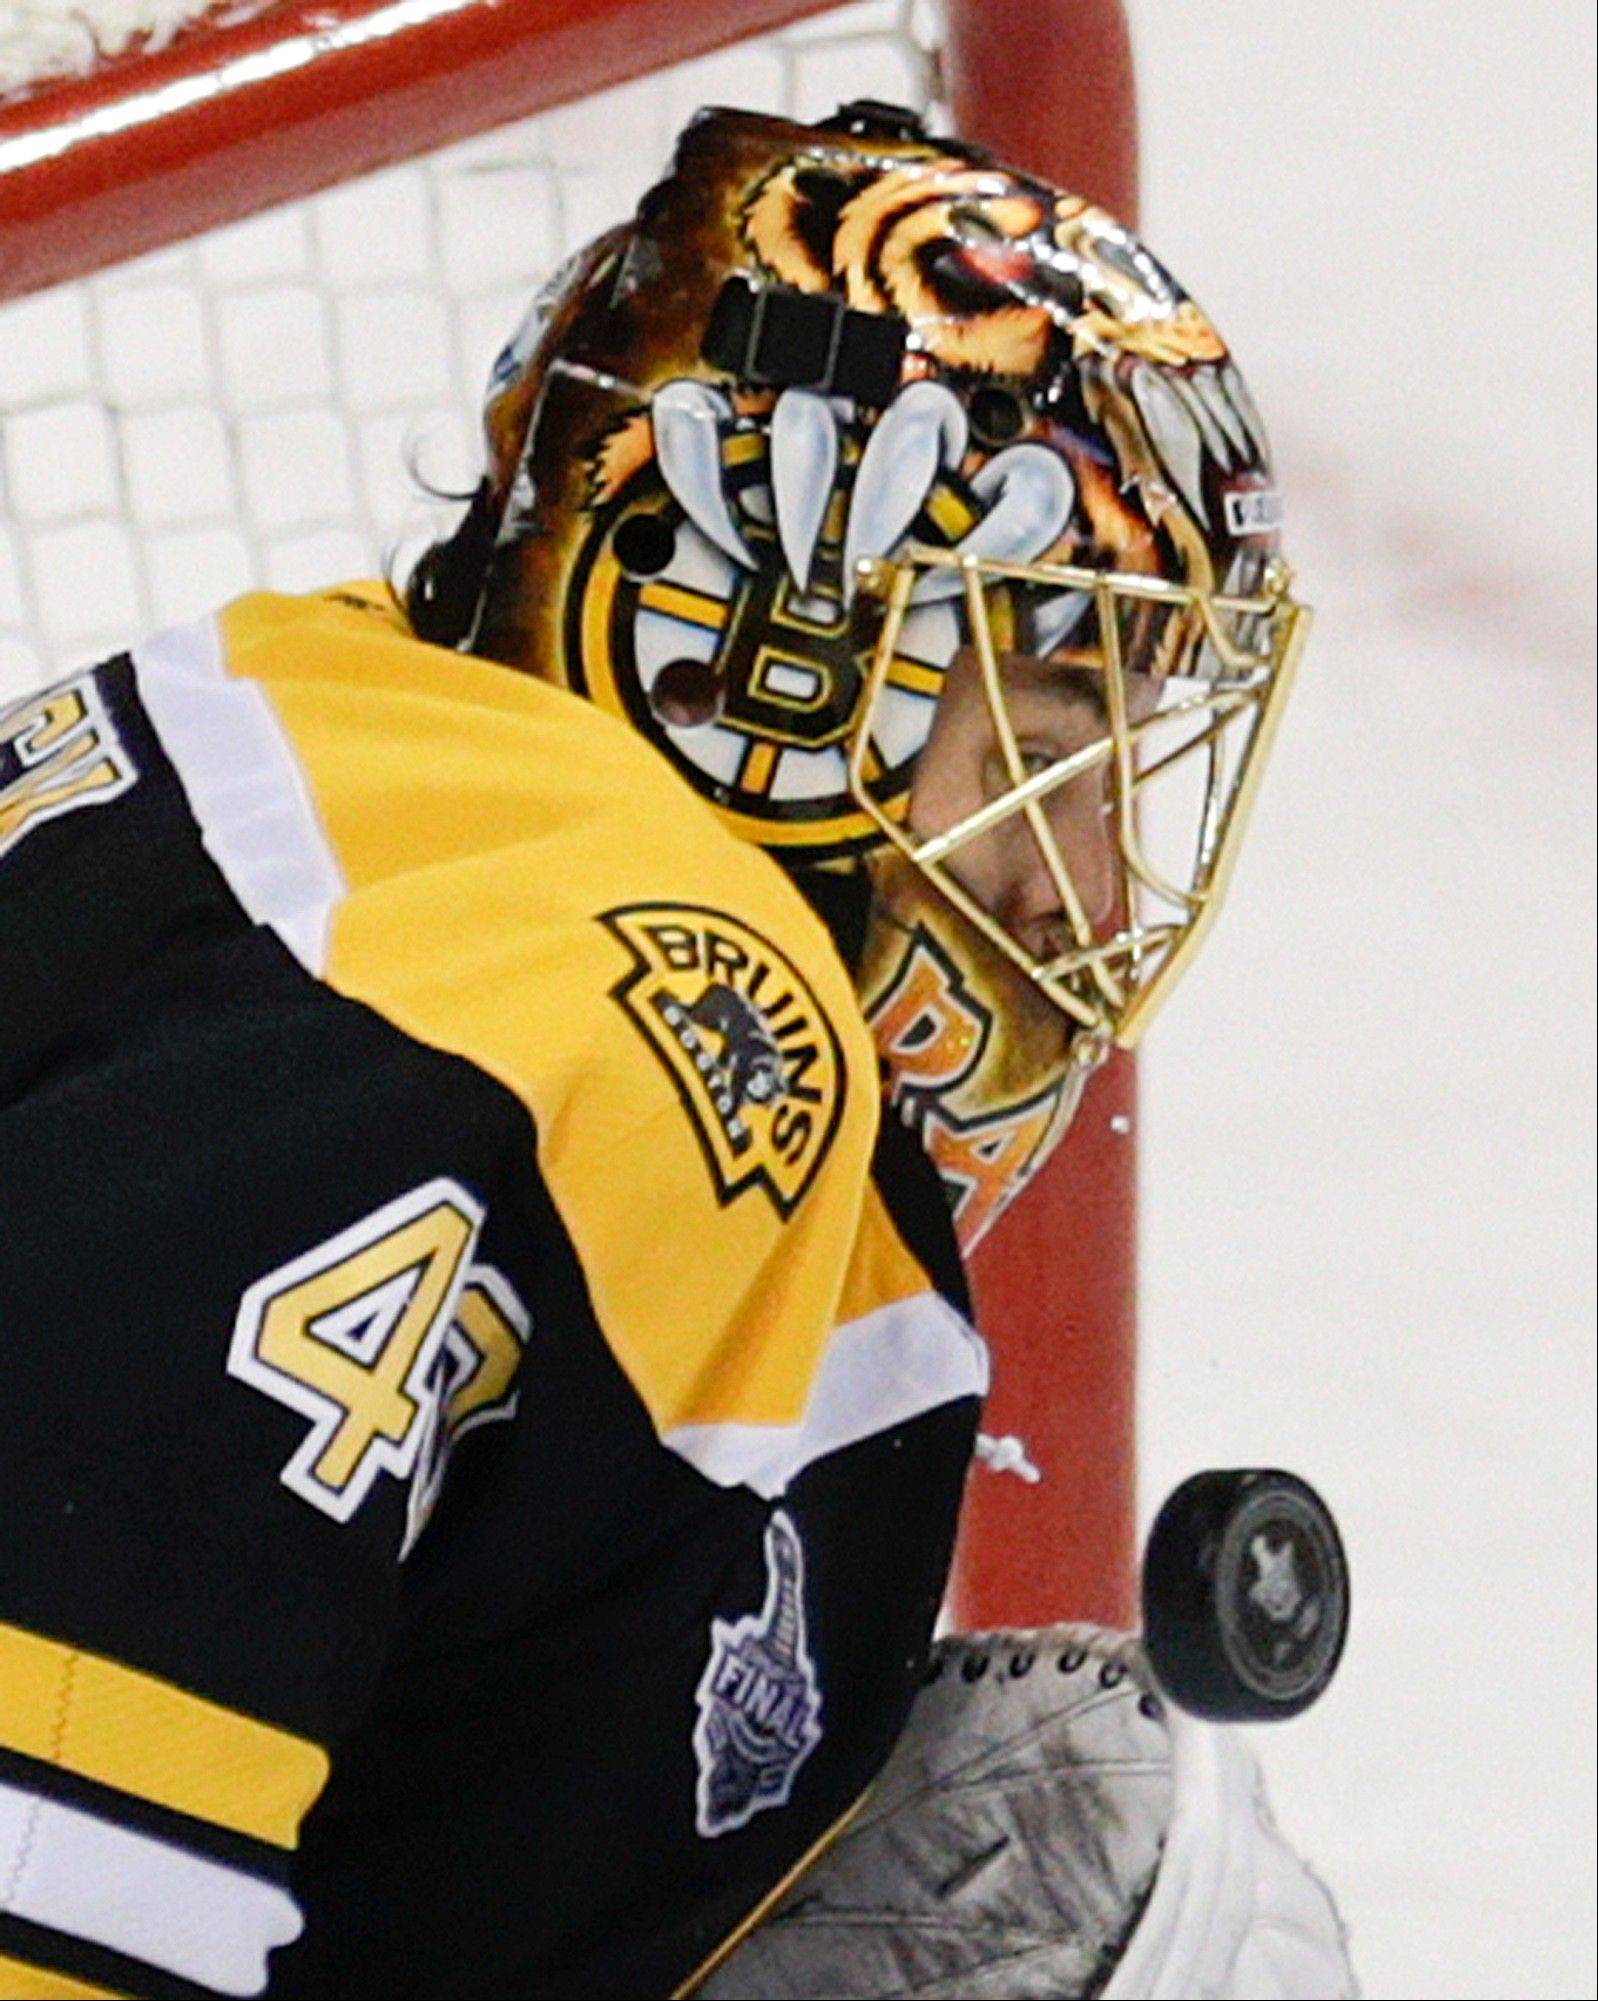 Boston Bruins goalie Tuukka Rask (40), of Finland, turns aside the puck against the Chicago Blackhawks during the first period in Game 4 of the NHL hockey Stanley Cup Finals.